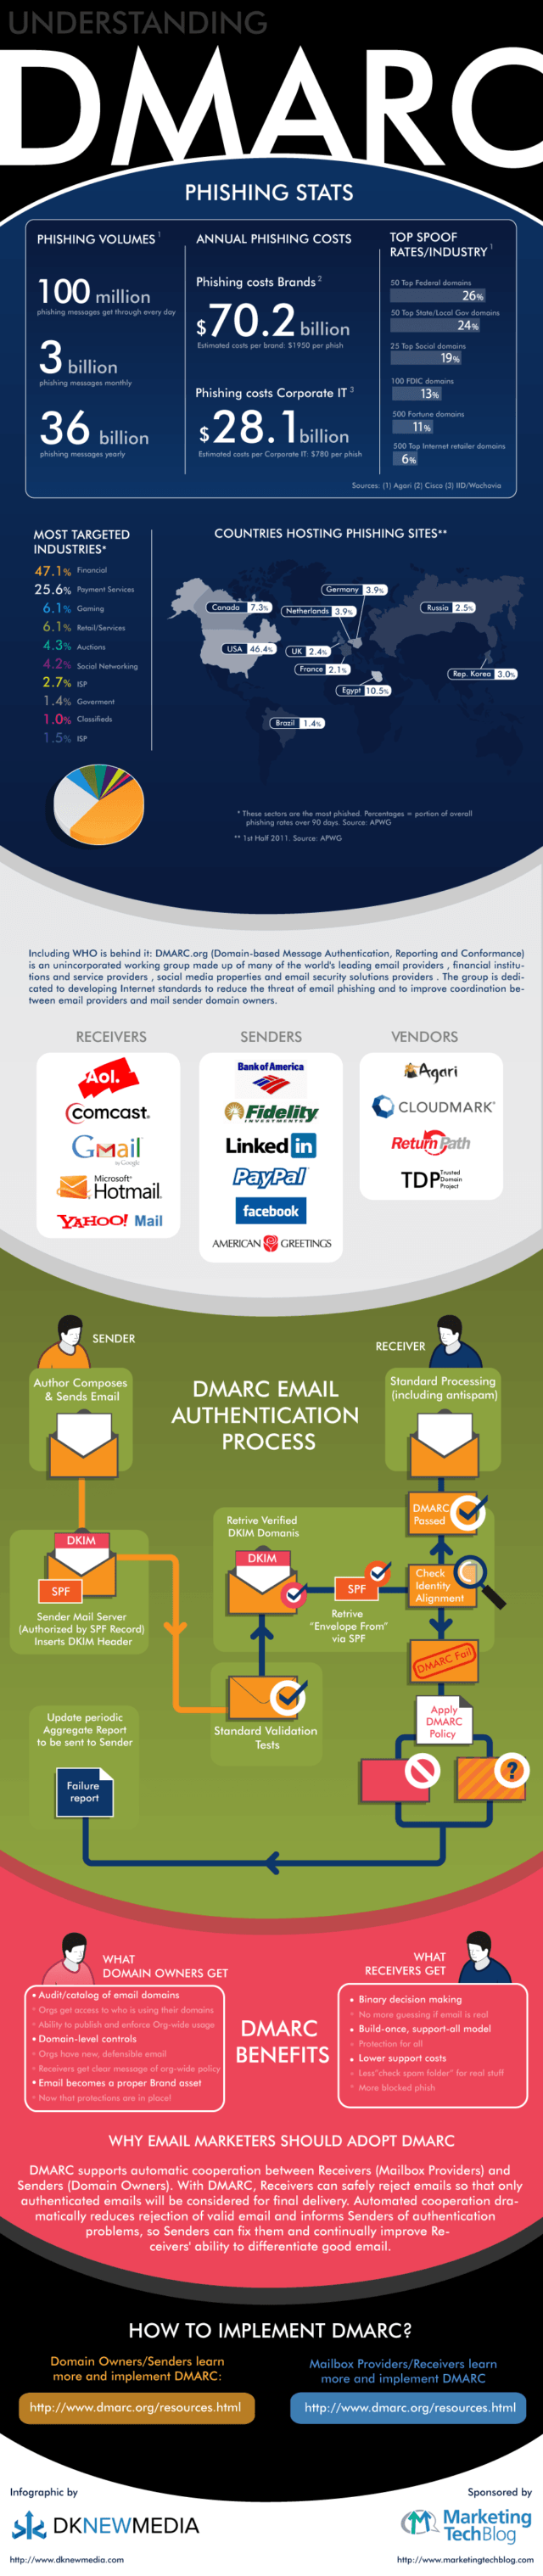 What is DMARC